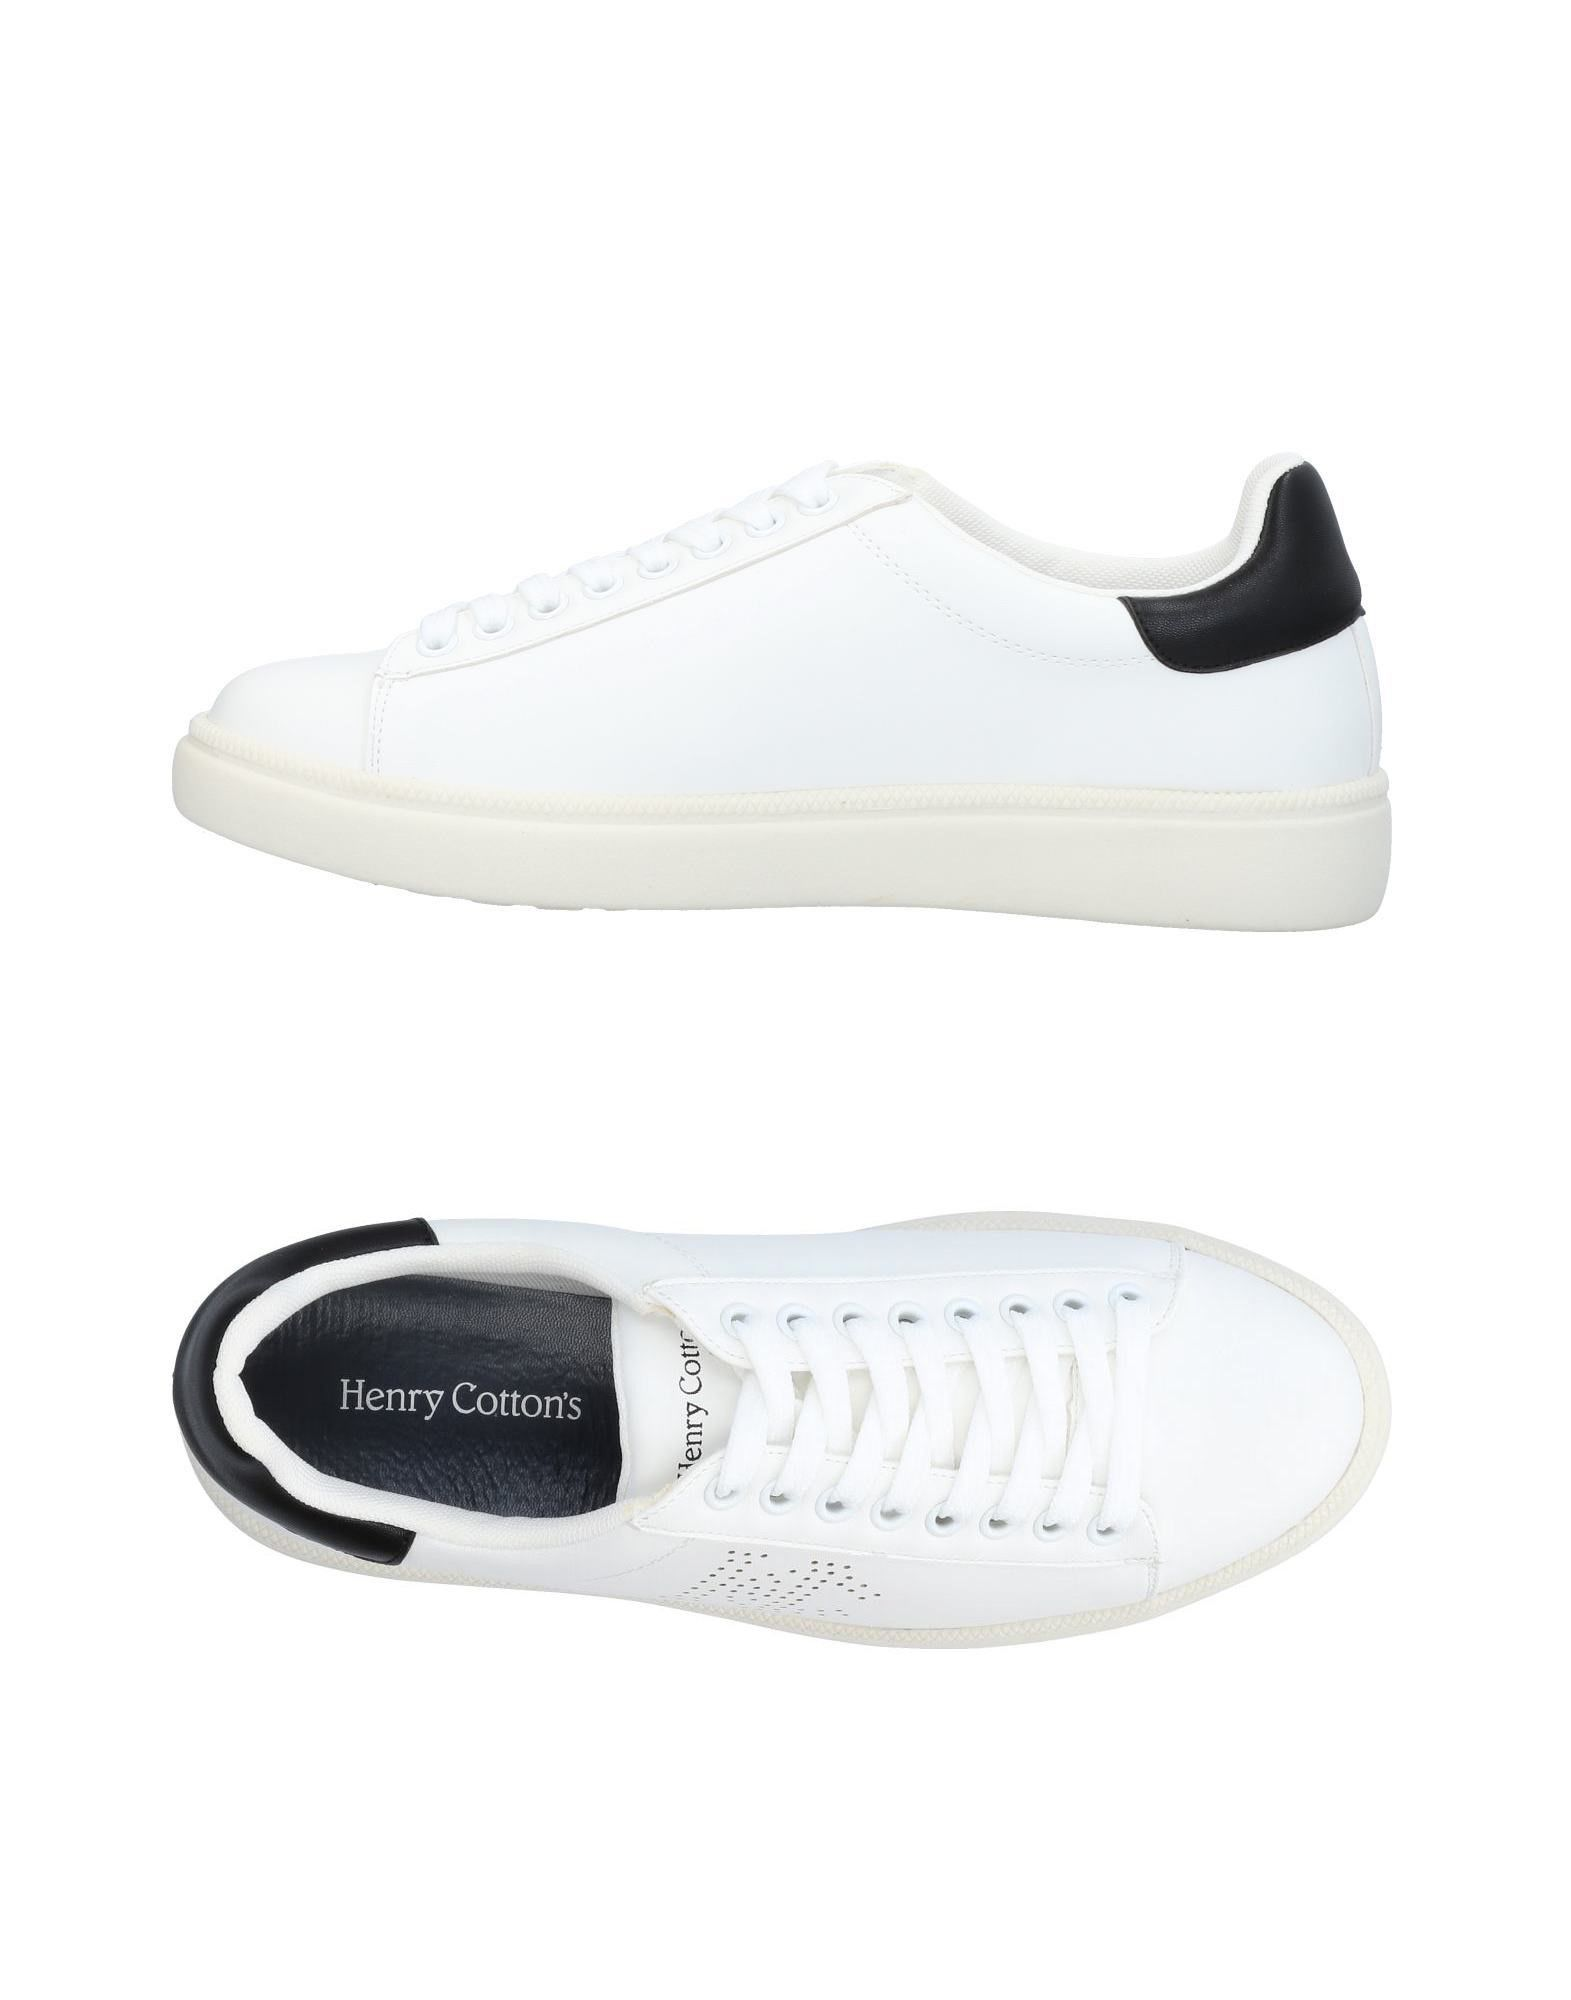 Sneakers Henry Cotton's Uomo - 11454101RU